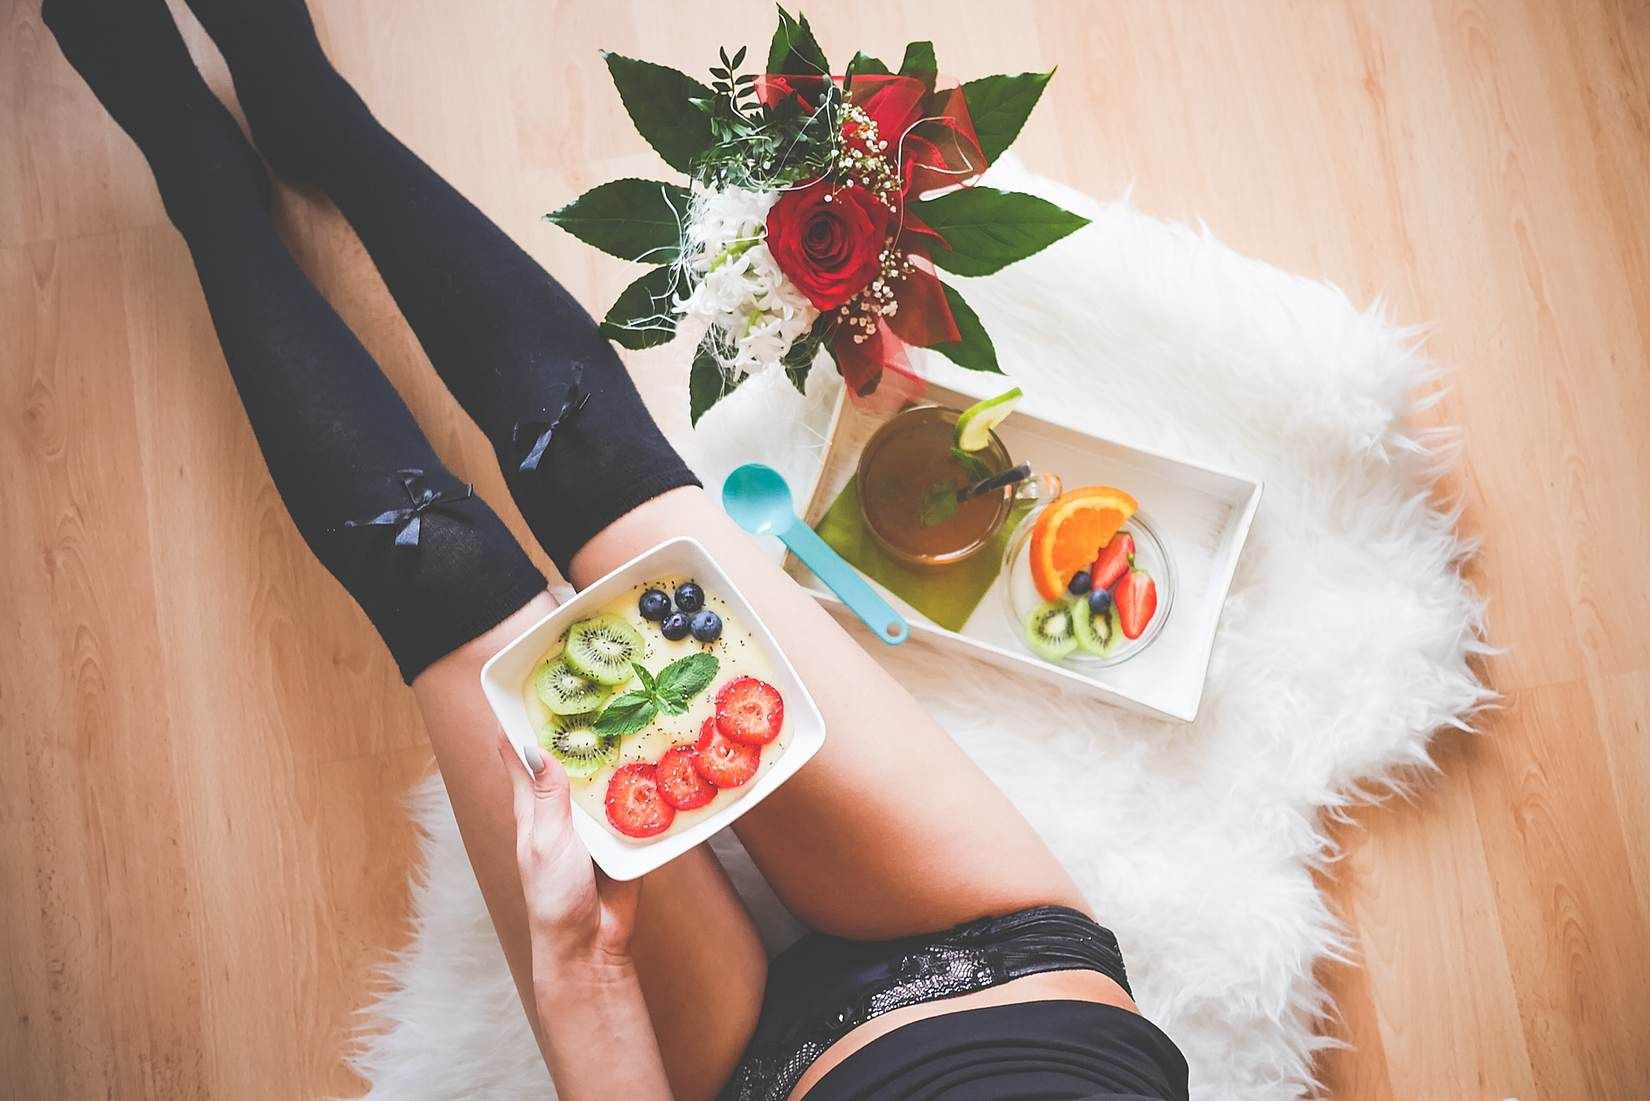 Young Woman with Her Morning Fresh & Healthy Breakfast Free Stock Photo